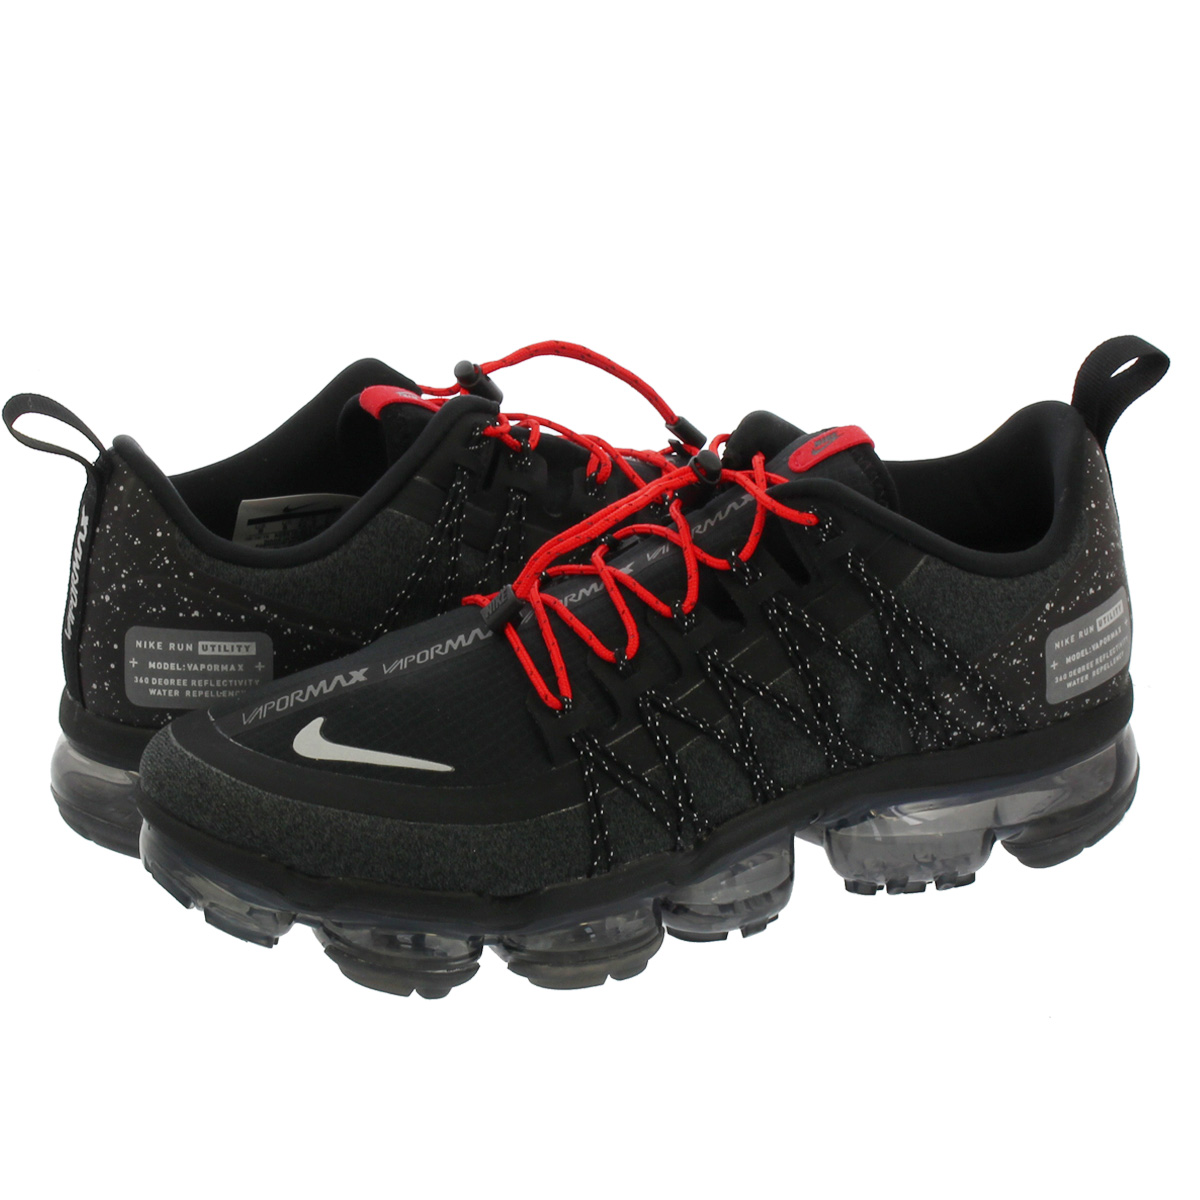 buy popular 9dc43 66b65 NIKE AIR VAPORMAX RUN UTILITY Nike vapor max orchid utility BLACK/REFLECT  SILVER/ANTHRACITE aq8810-001